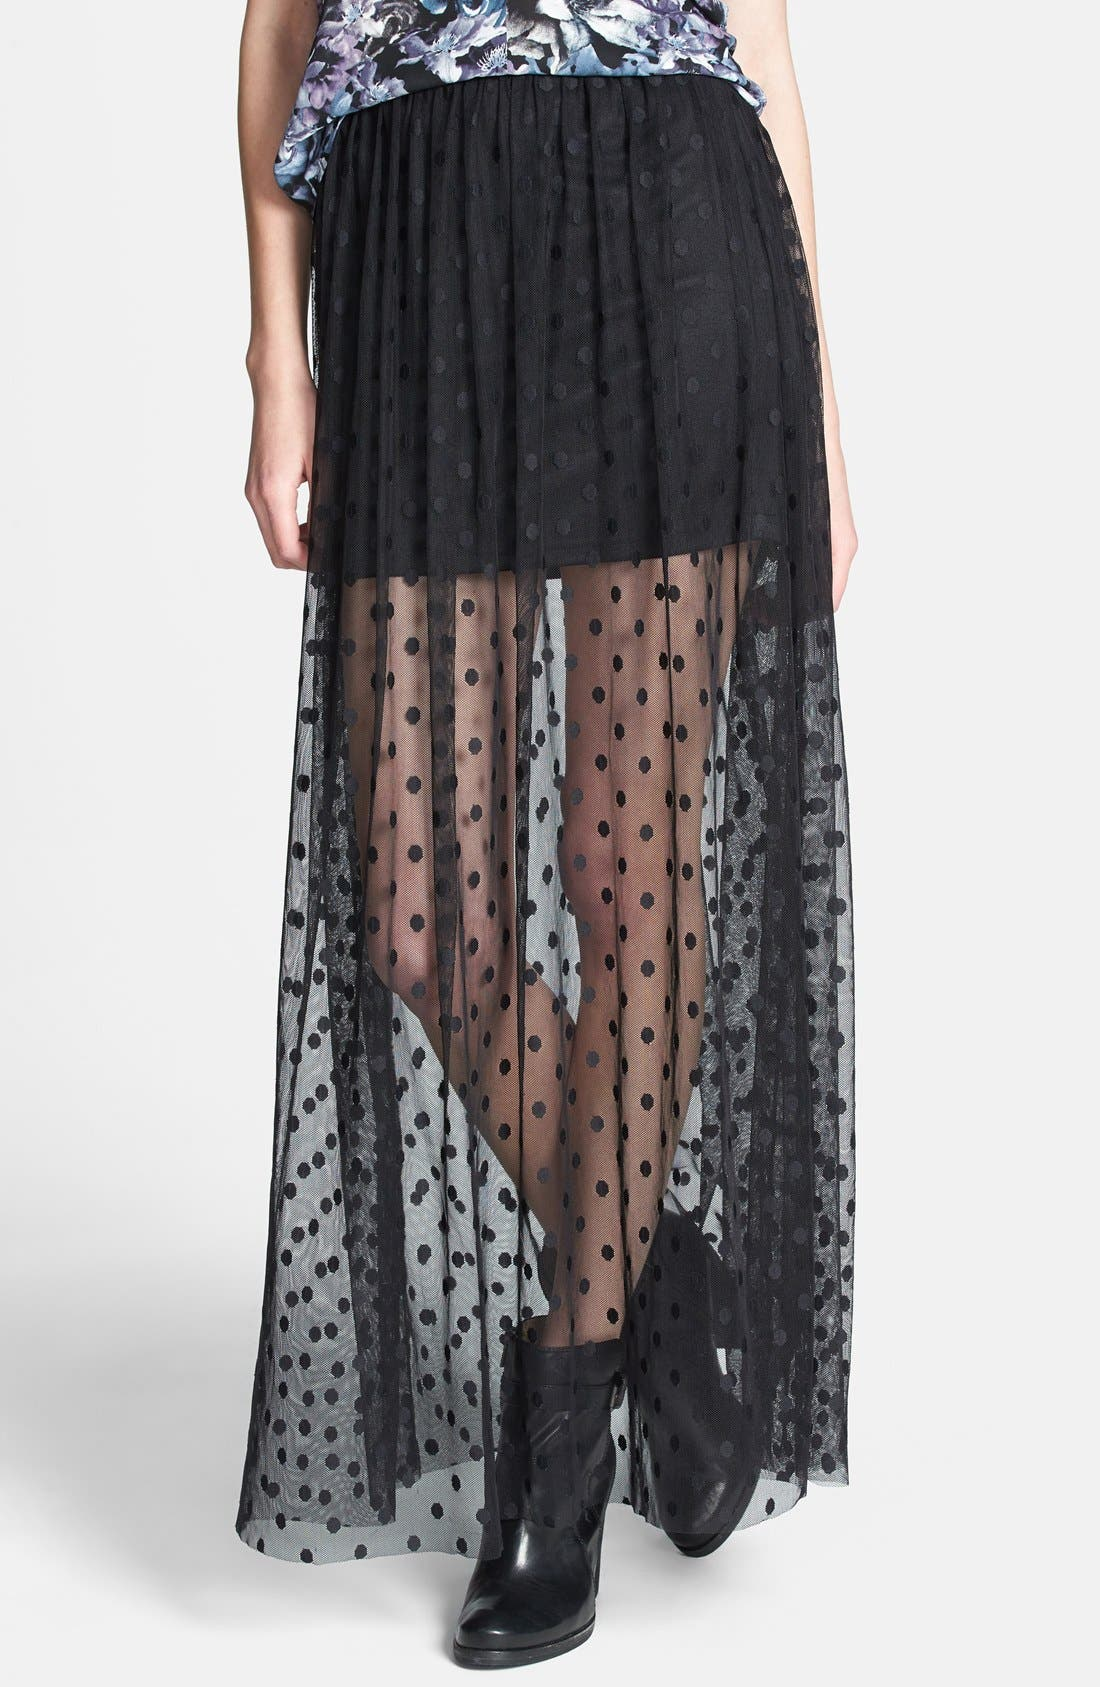 Main Image - ASTR Polka Dot Sheer Maxi Skirt (Nordstrom Exclusive)